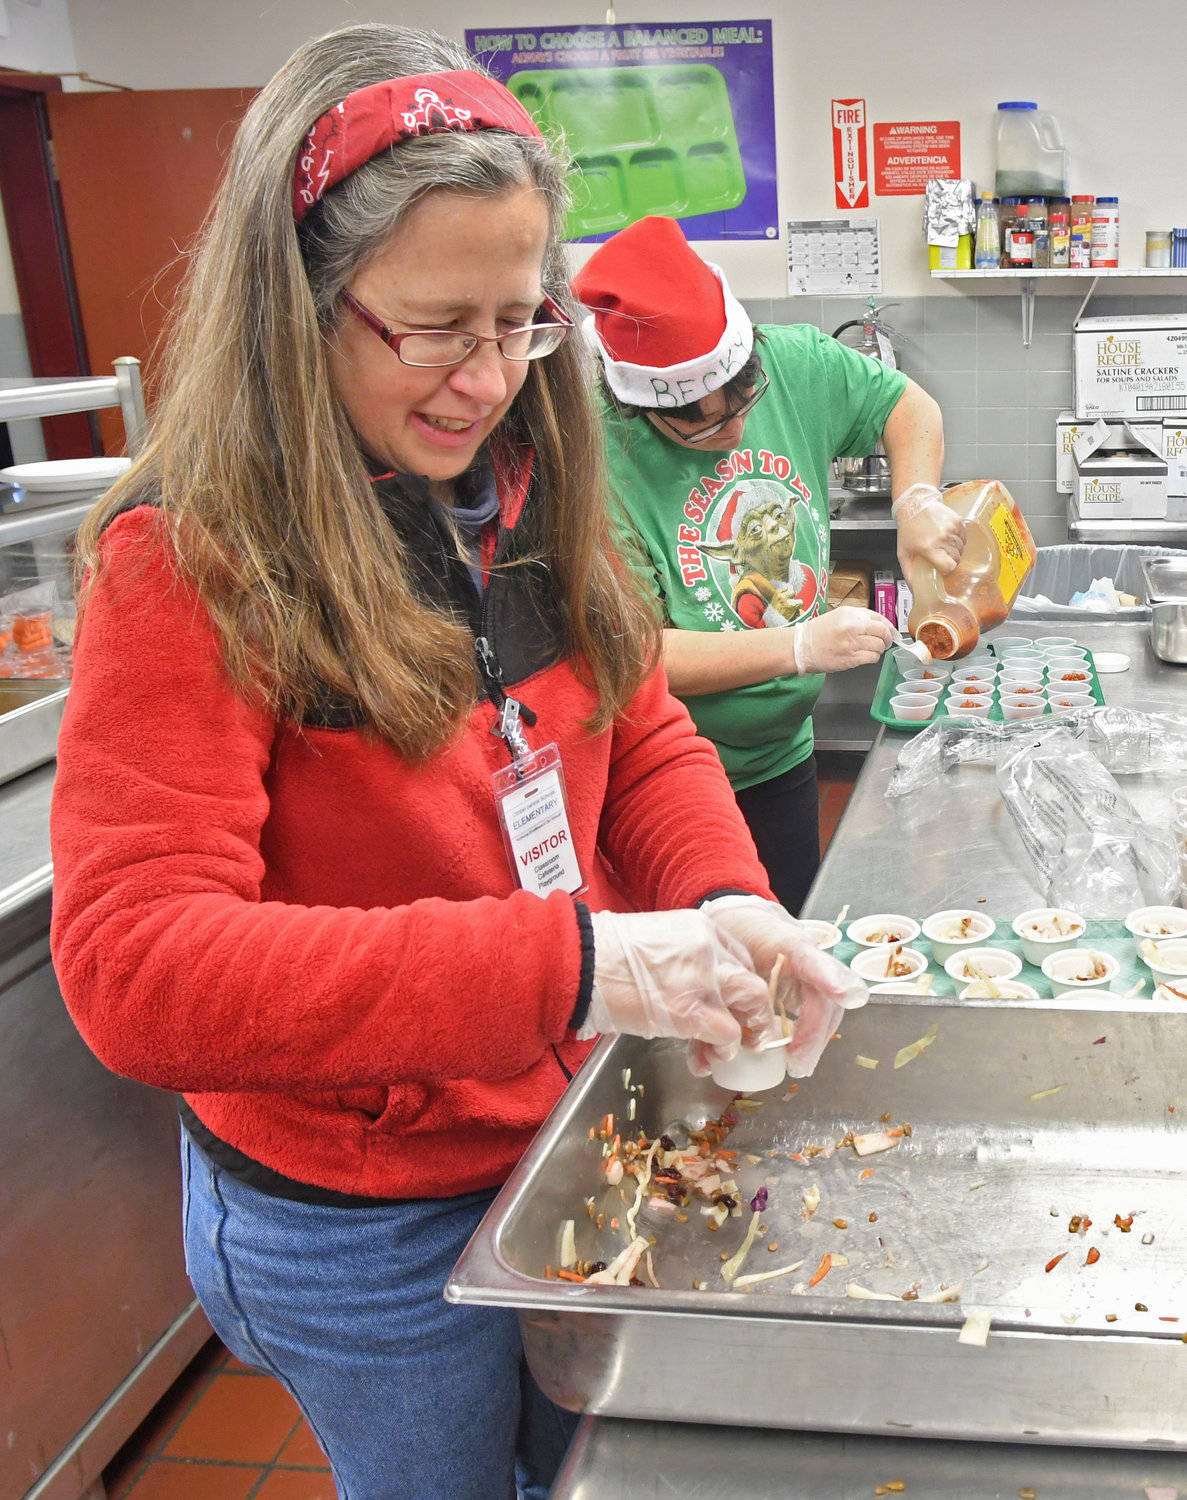 DISHING IT OUT — Clinton Elementary School parent volunteer Sarah McCullough dishes out Asian Cabbage Slaw into little cups for children to try during their lunch on Dec. 18 as part of the Harvest of the Month program.